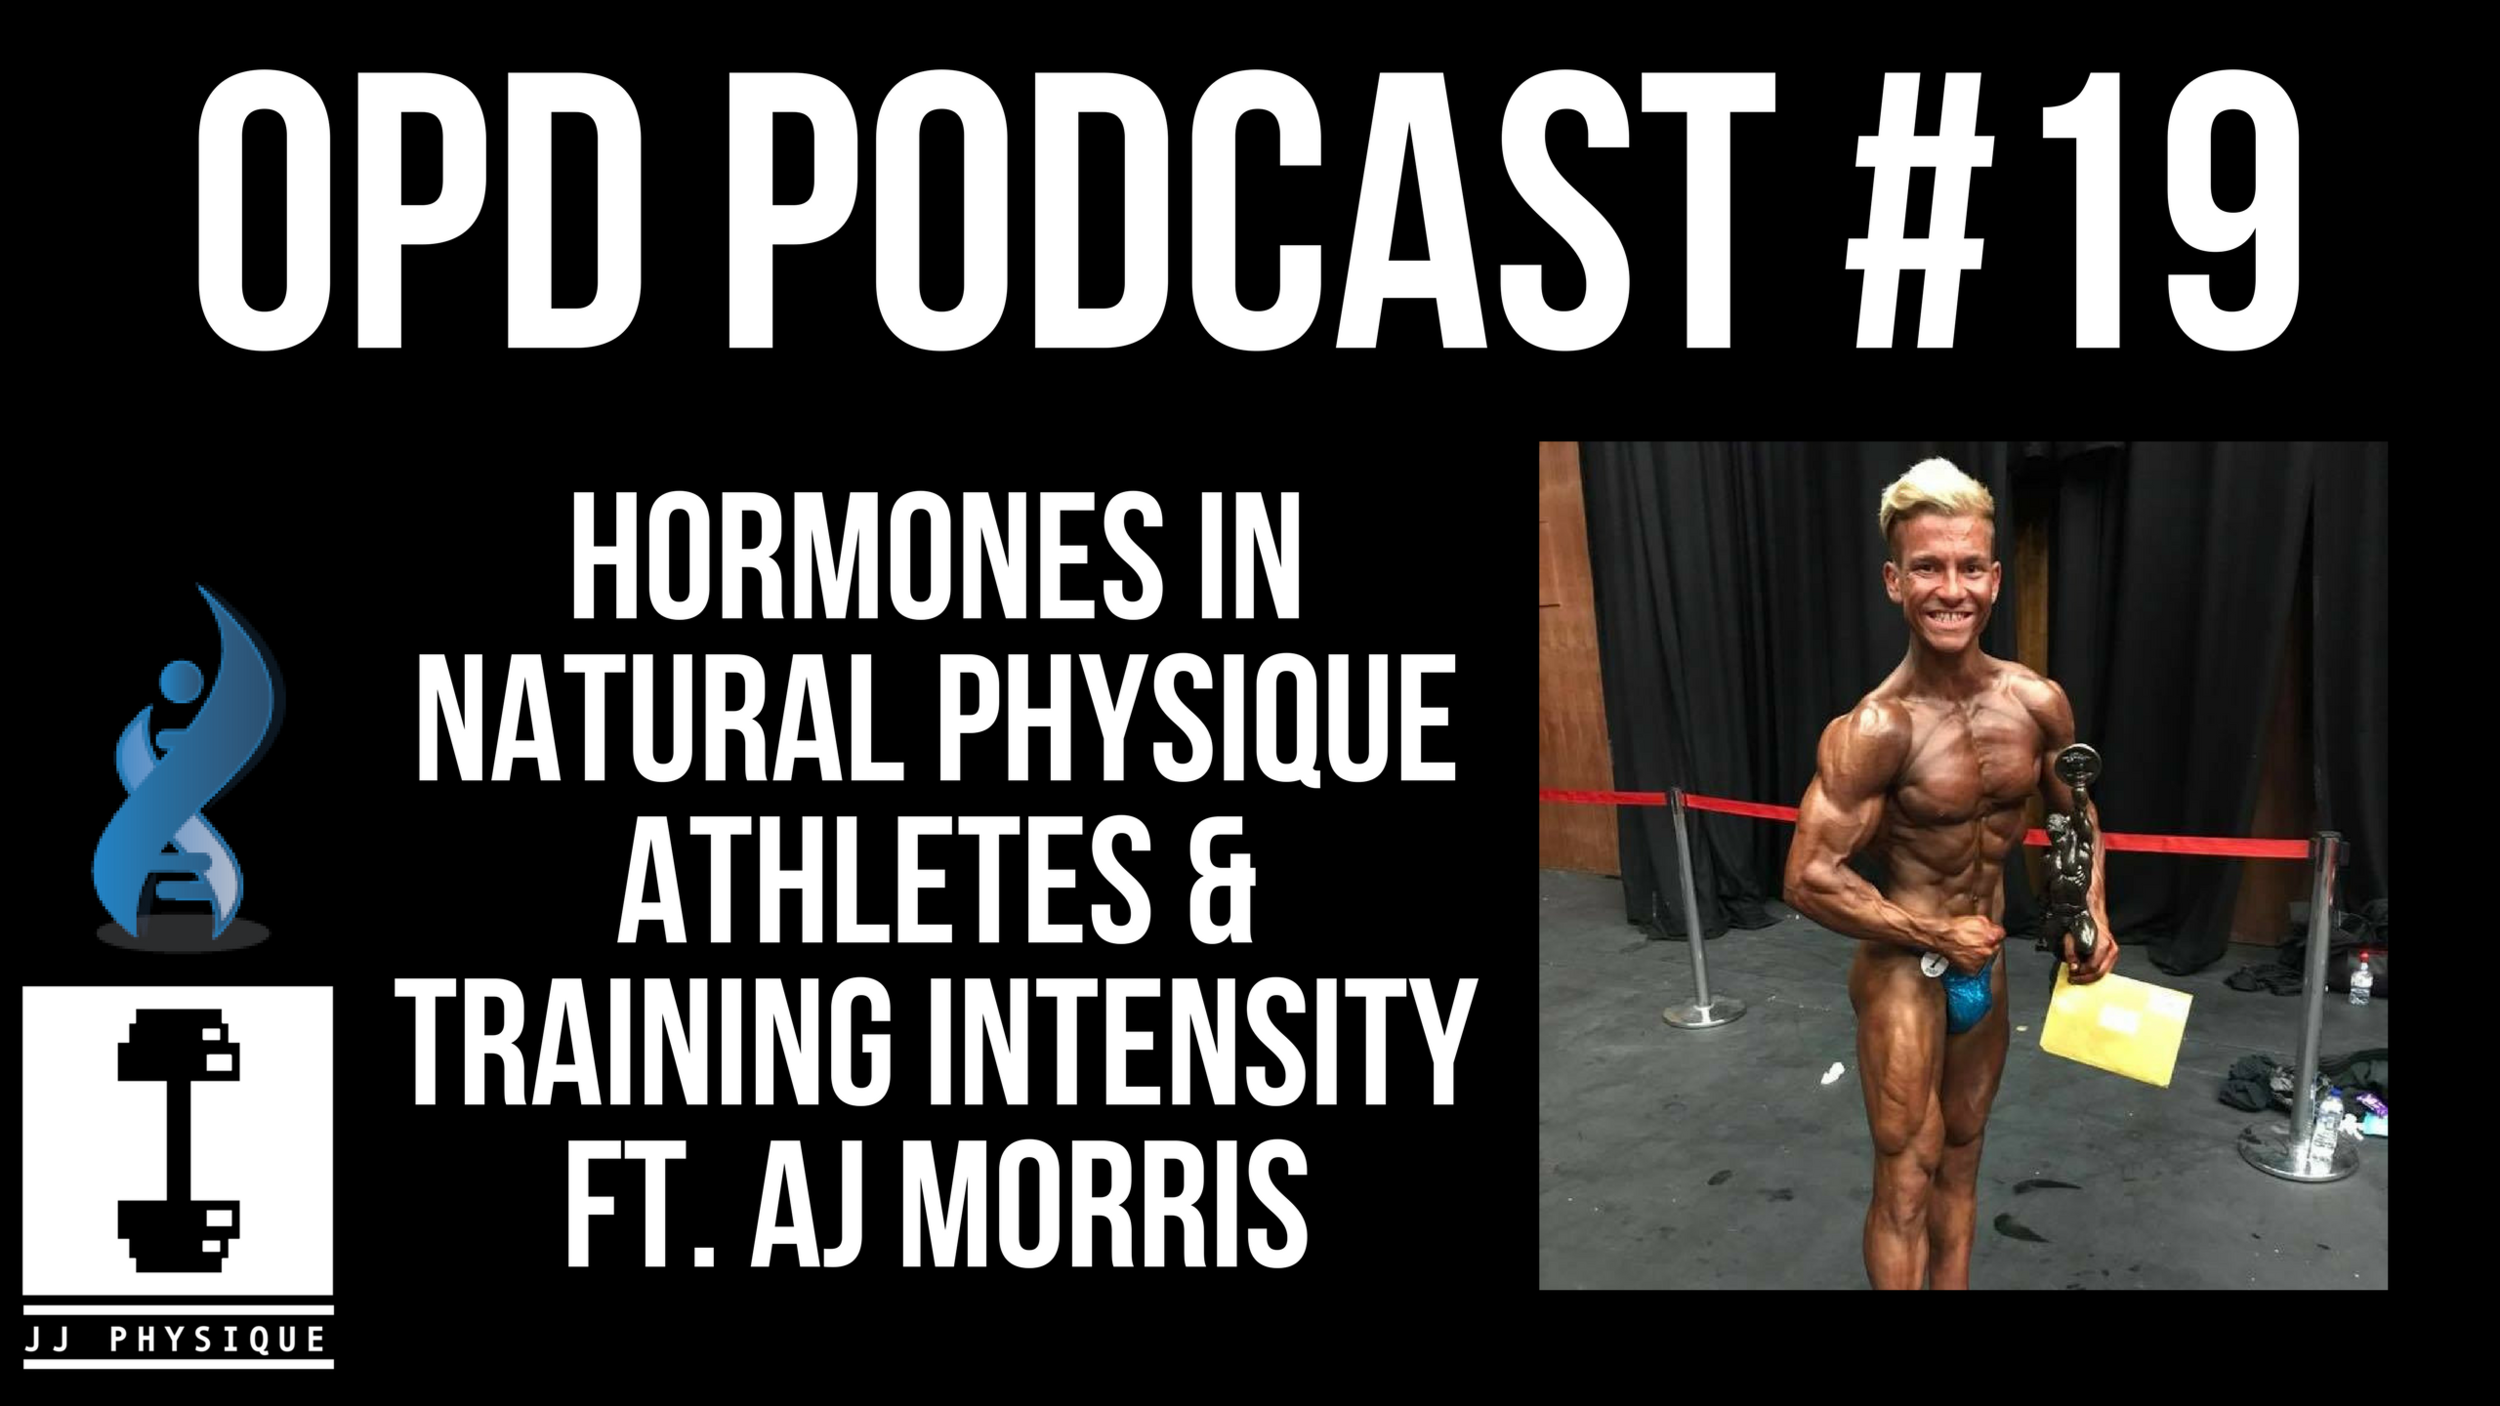 OPTIMAL PHYSIQUE DEVELOPMENTPODCAST (7).png